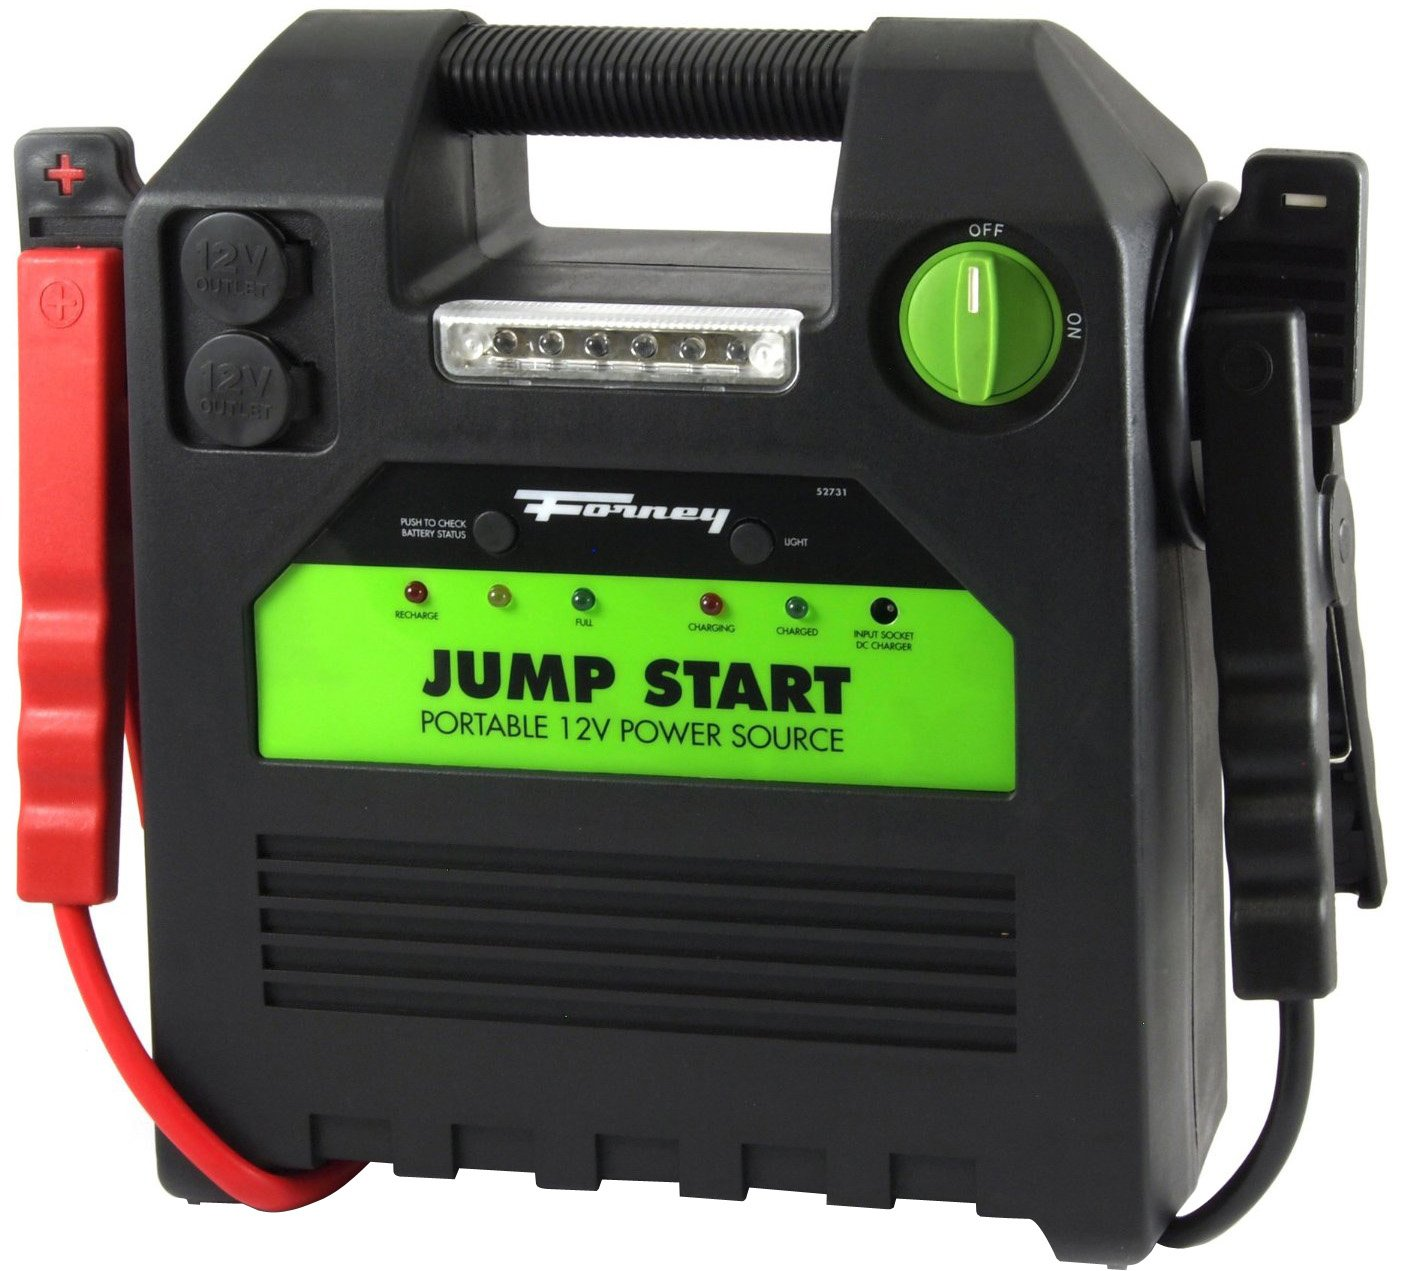 Forney 52731 Battery Booster Pack, 18-Amp Hour, 12-Volt Jump Start